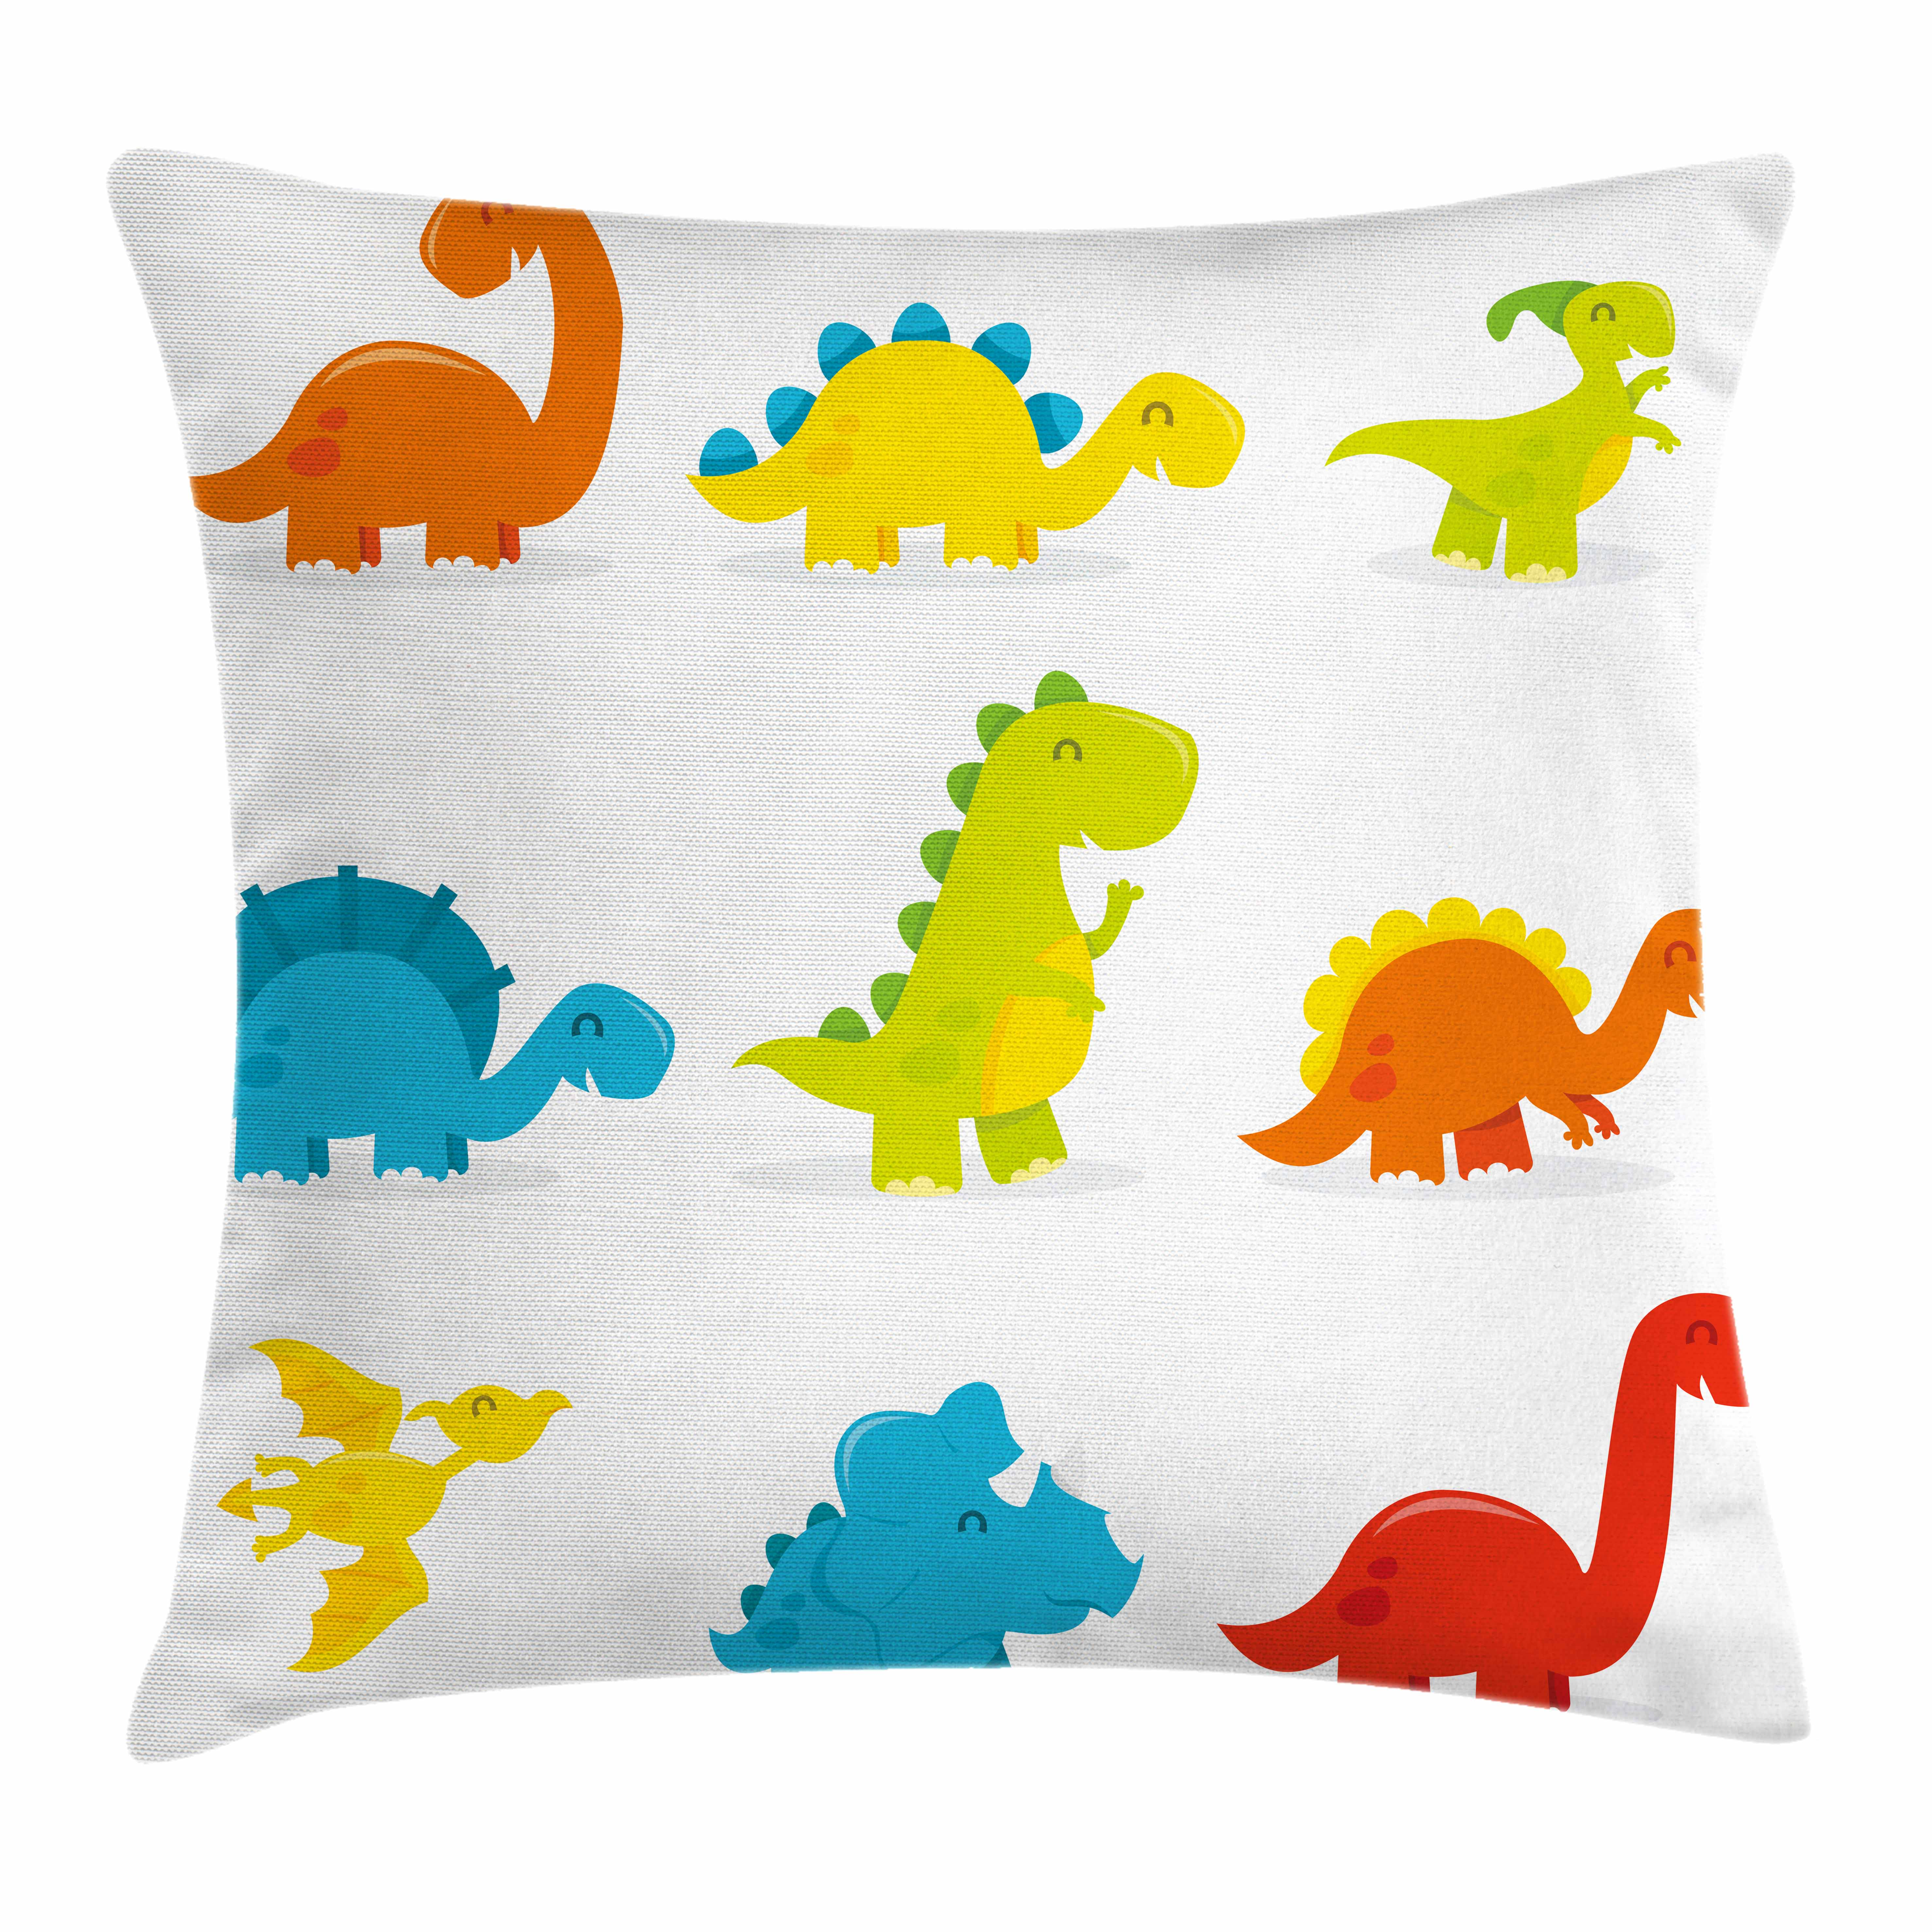 Dinosaur Throw Pillow Cushion Cover, Cute and Funny Dinosaurs Set Cartoon Style Colorful Collection Kids Nursery Theme, Decorative Square Accent Pillow Case, 16 X 16 Inches, Multicolor, by Ambesonne